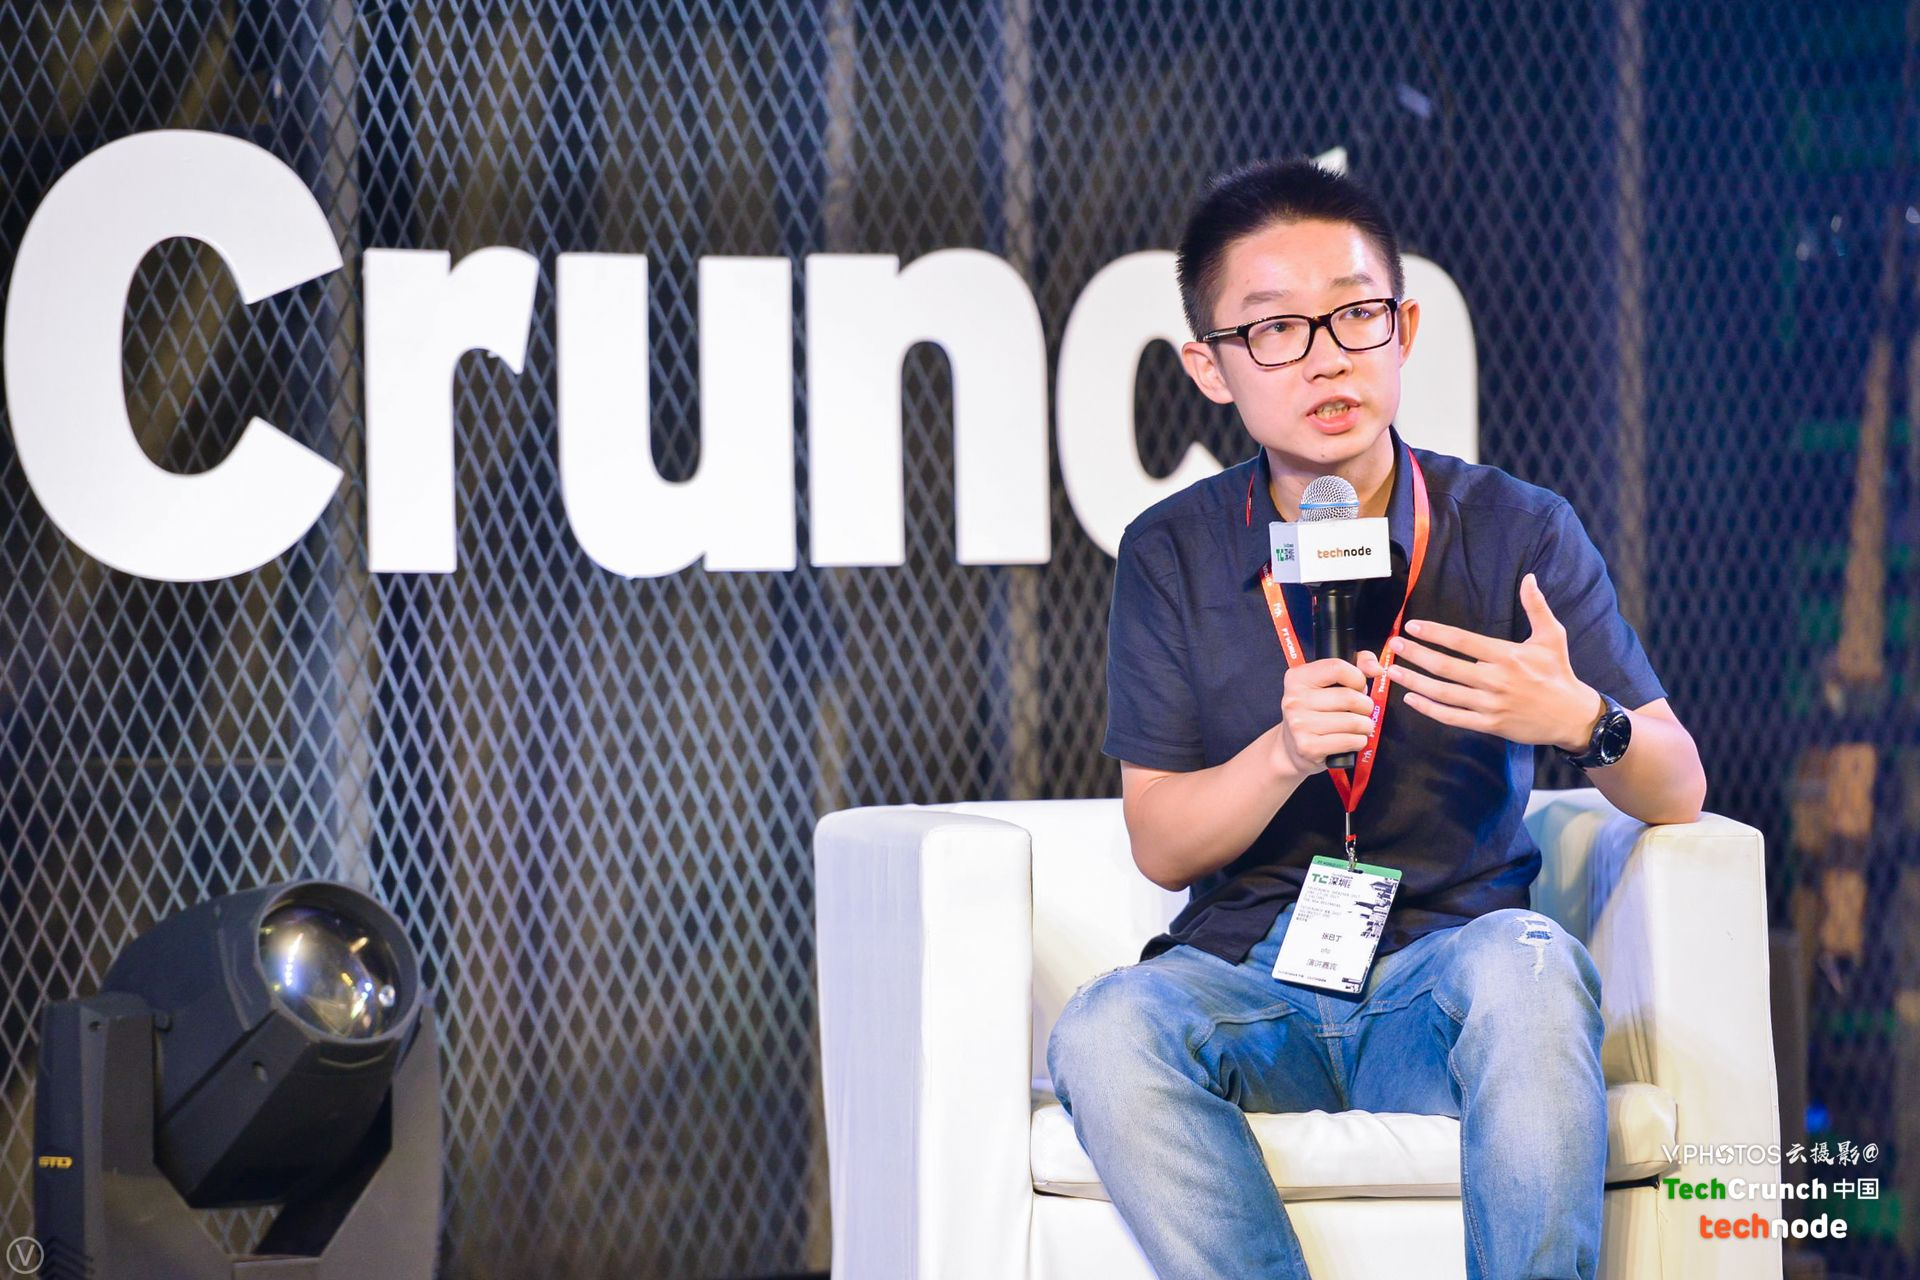 ofo co-founder Austin Zhang